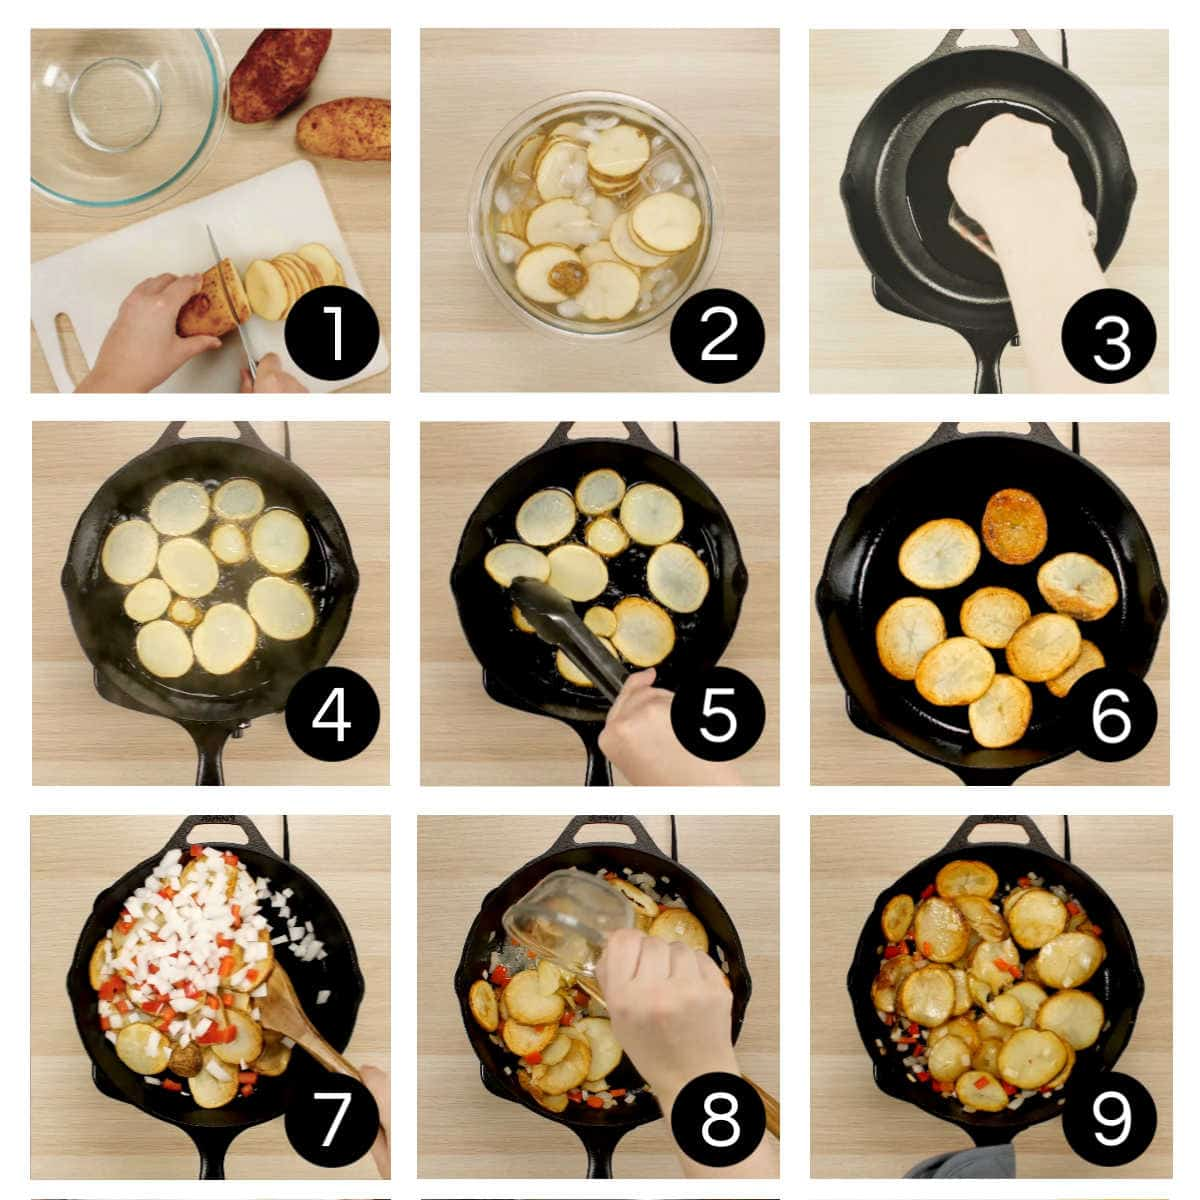 Step by step images for pan fried potatoes illustrating the numbered steps.